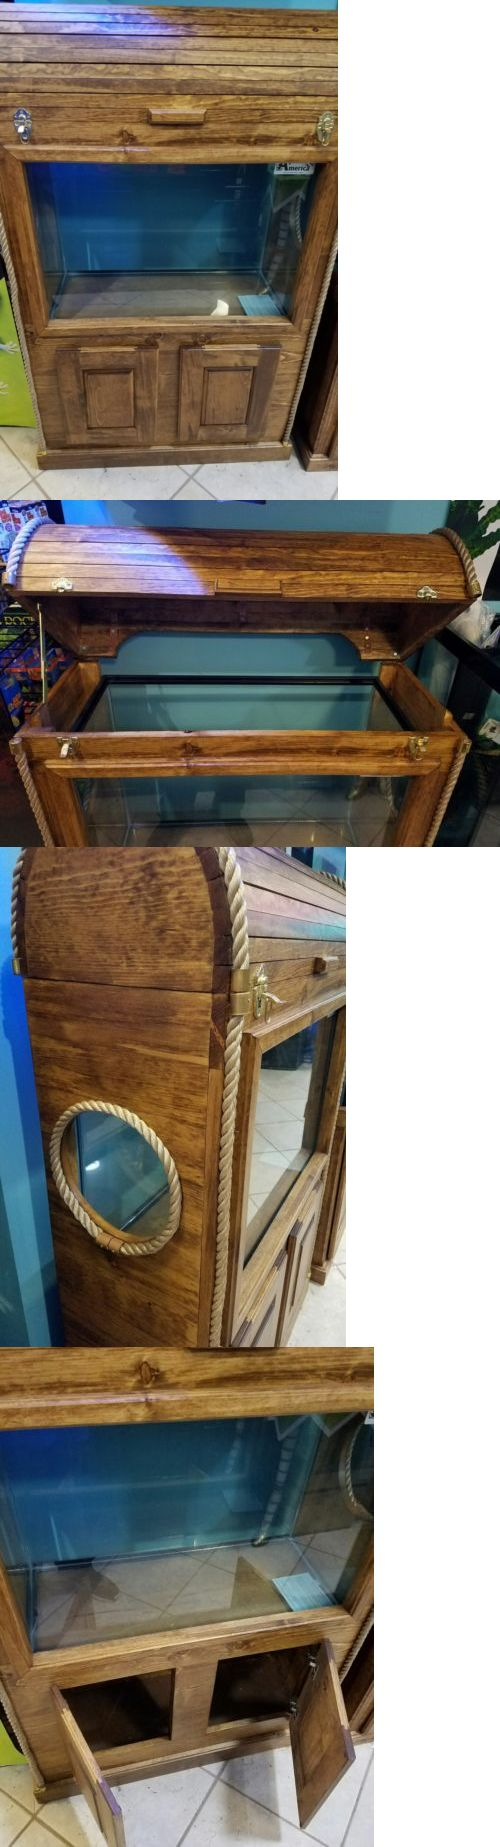 Aquariums and Tanks 20755: 40 Gallon Treasure Chest Aquarium And Stand BUY IT NOW ONLY: $440.0